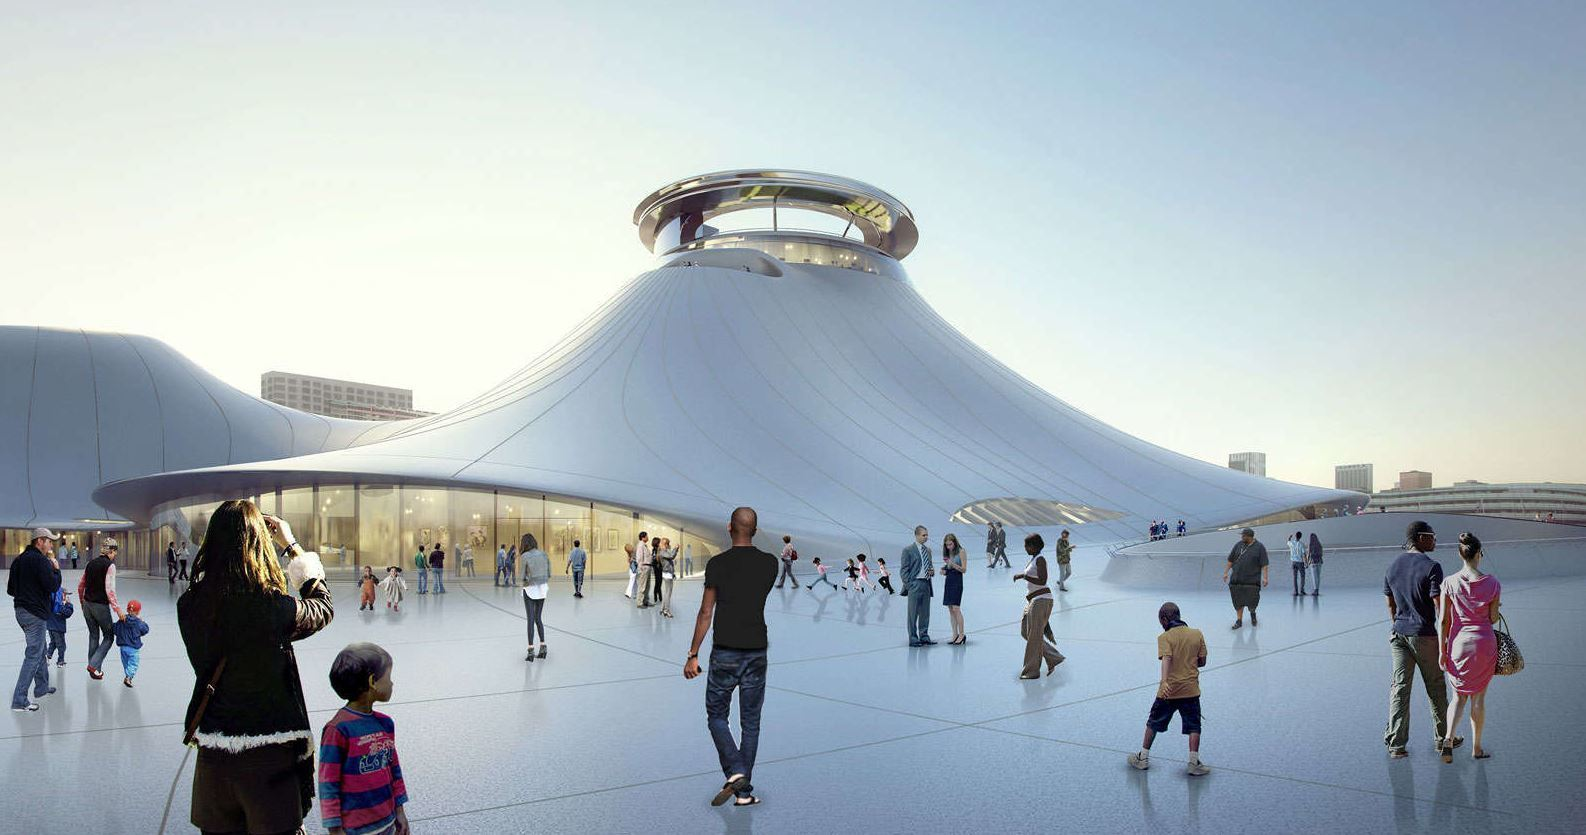 George_Lucas_Museum_-_Chicago_7.JPG Download free STL file George Lucas Museum of Narrative Art, Chicago IL - Scale Model • 3D printable object, futurefactory